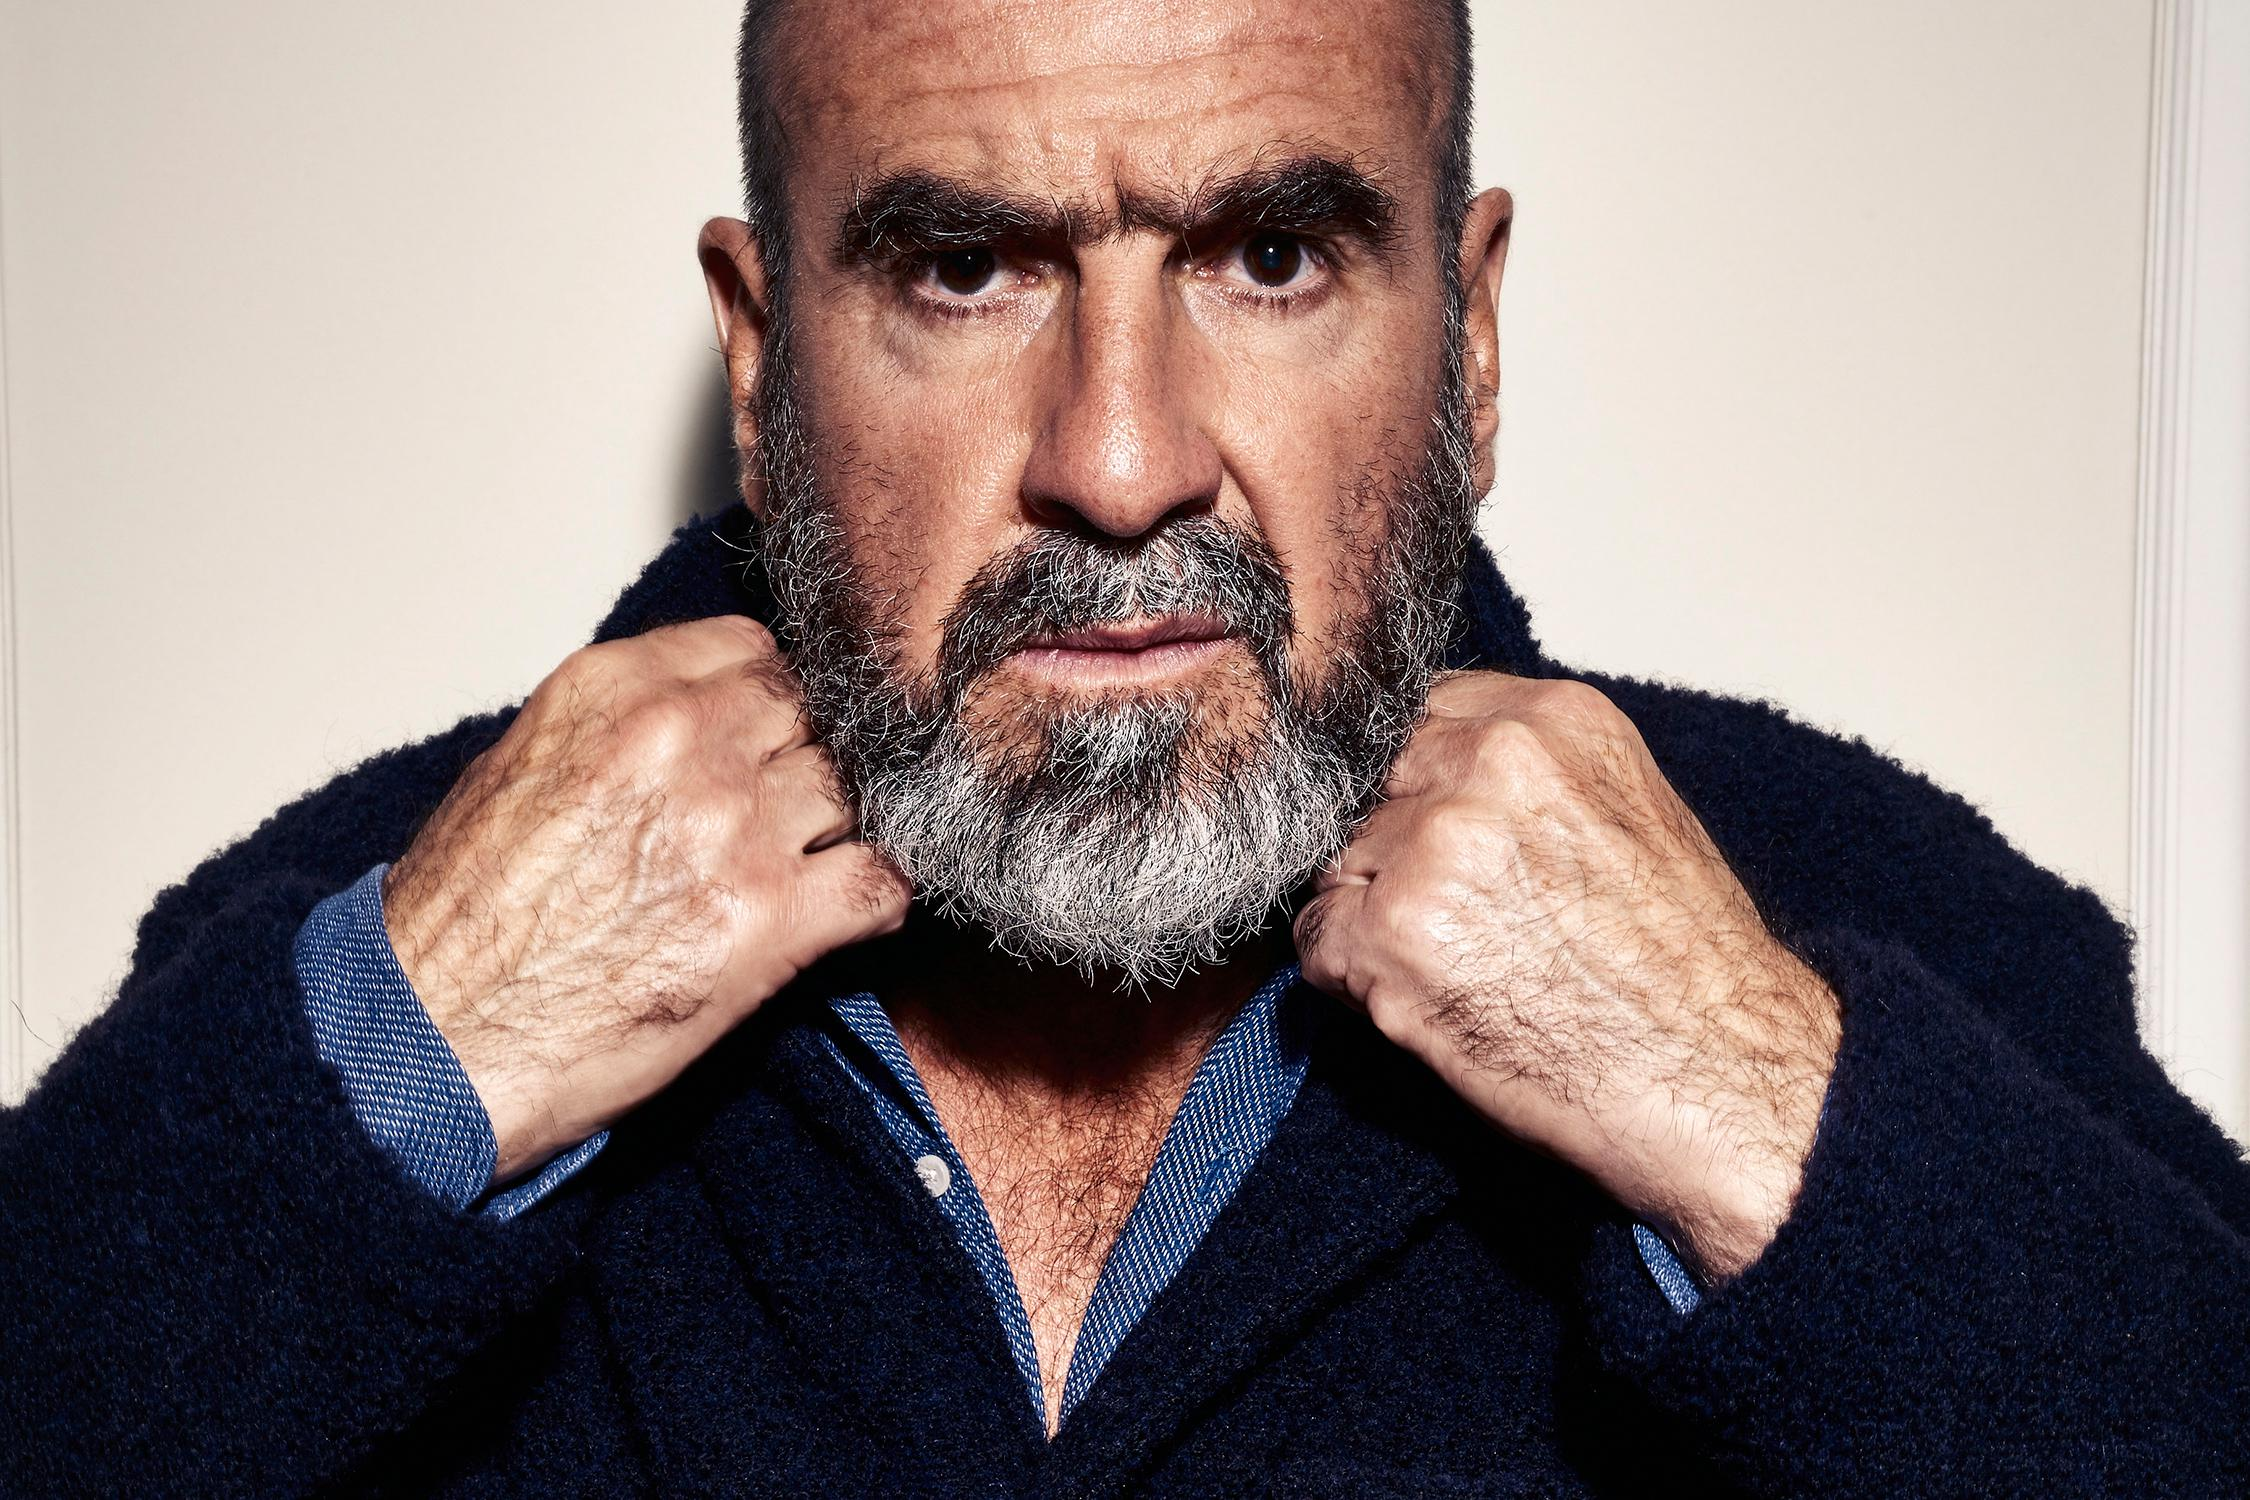 Eric cantona is the man who changed english football for all time and a. A Life In The Day Former Manchester United Star Eric Cantona On Singing At Breakfast And Keeping His Temper The Sunday Times Magazine The Sunday Times